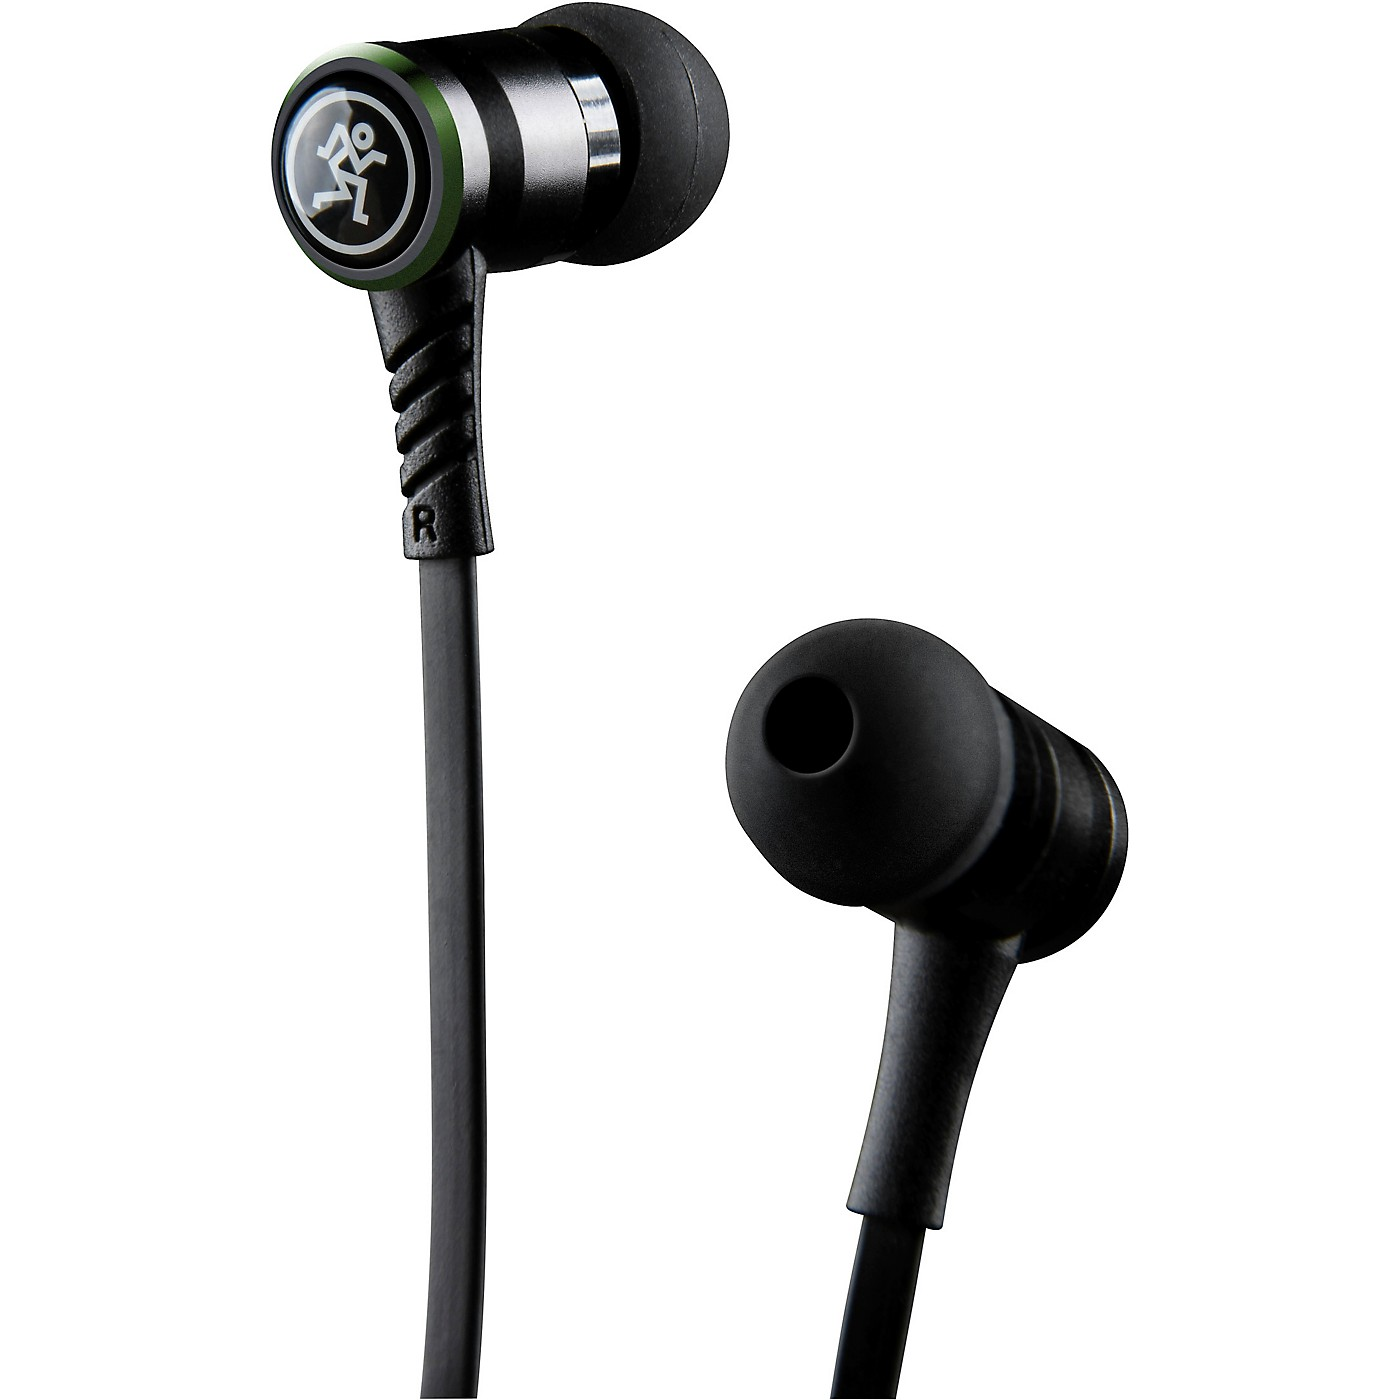 Mackie CR Buds High Performance Earphones with Mic and Control thumbnail